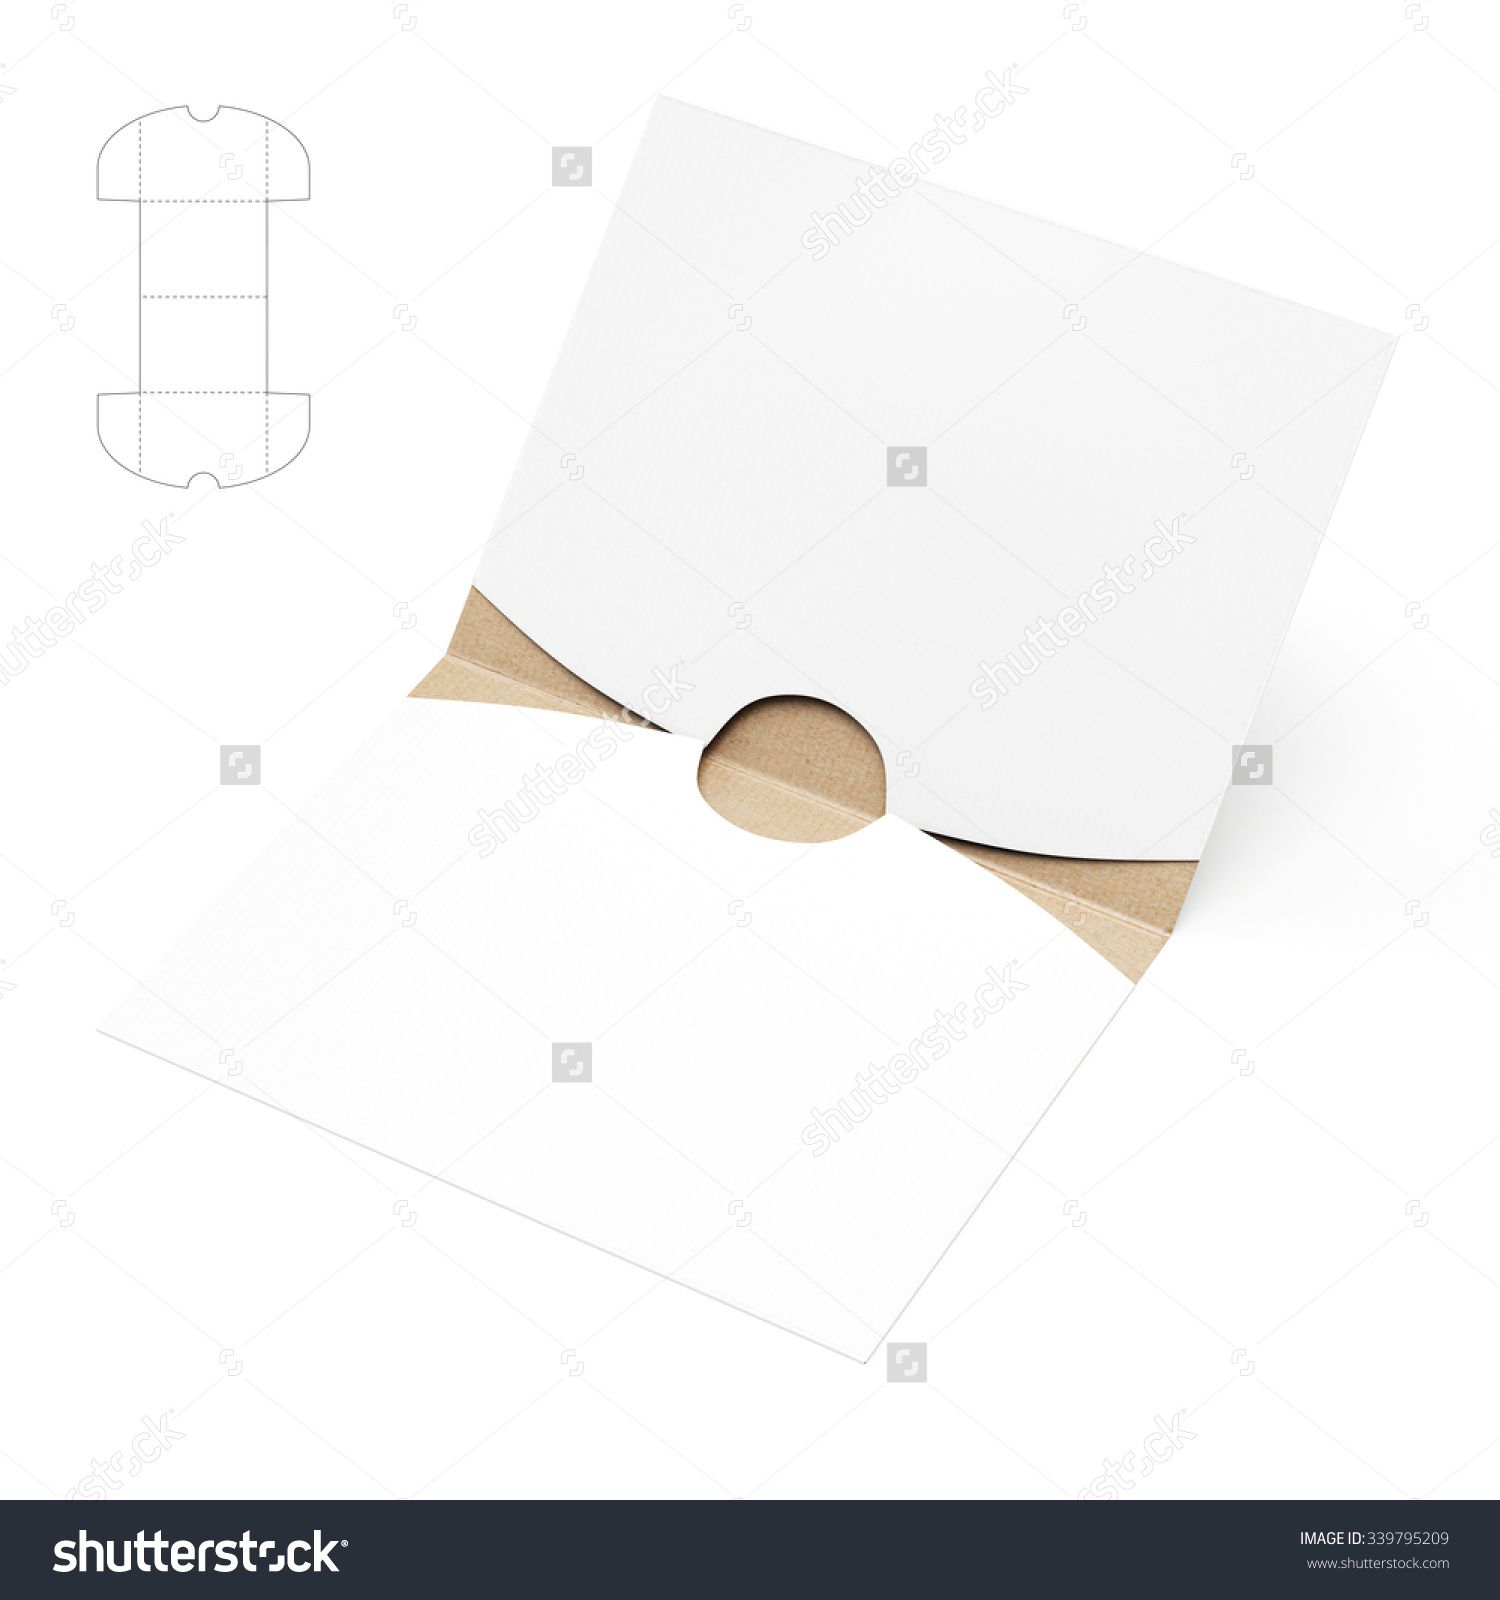 Empty Square Folder With Die Cut Template Stock Photo 339795209 : Shutterstock